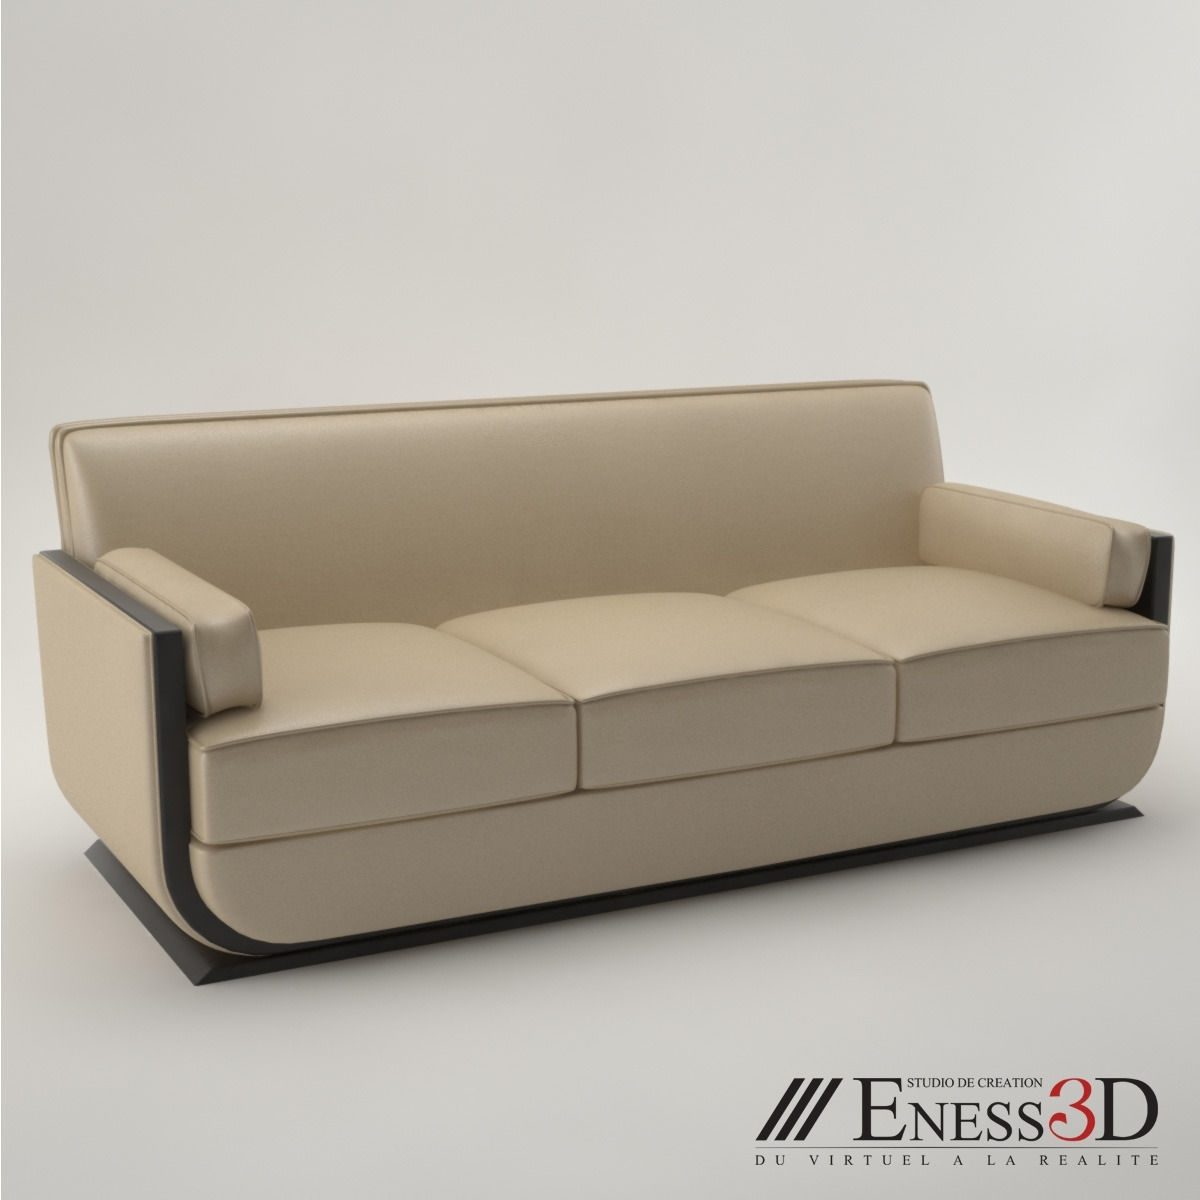 Fantastic Art Deco Sofa 43 About Remodel Contemporary Sofa With Art Deco Sofas (View 5 of 10)